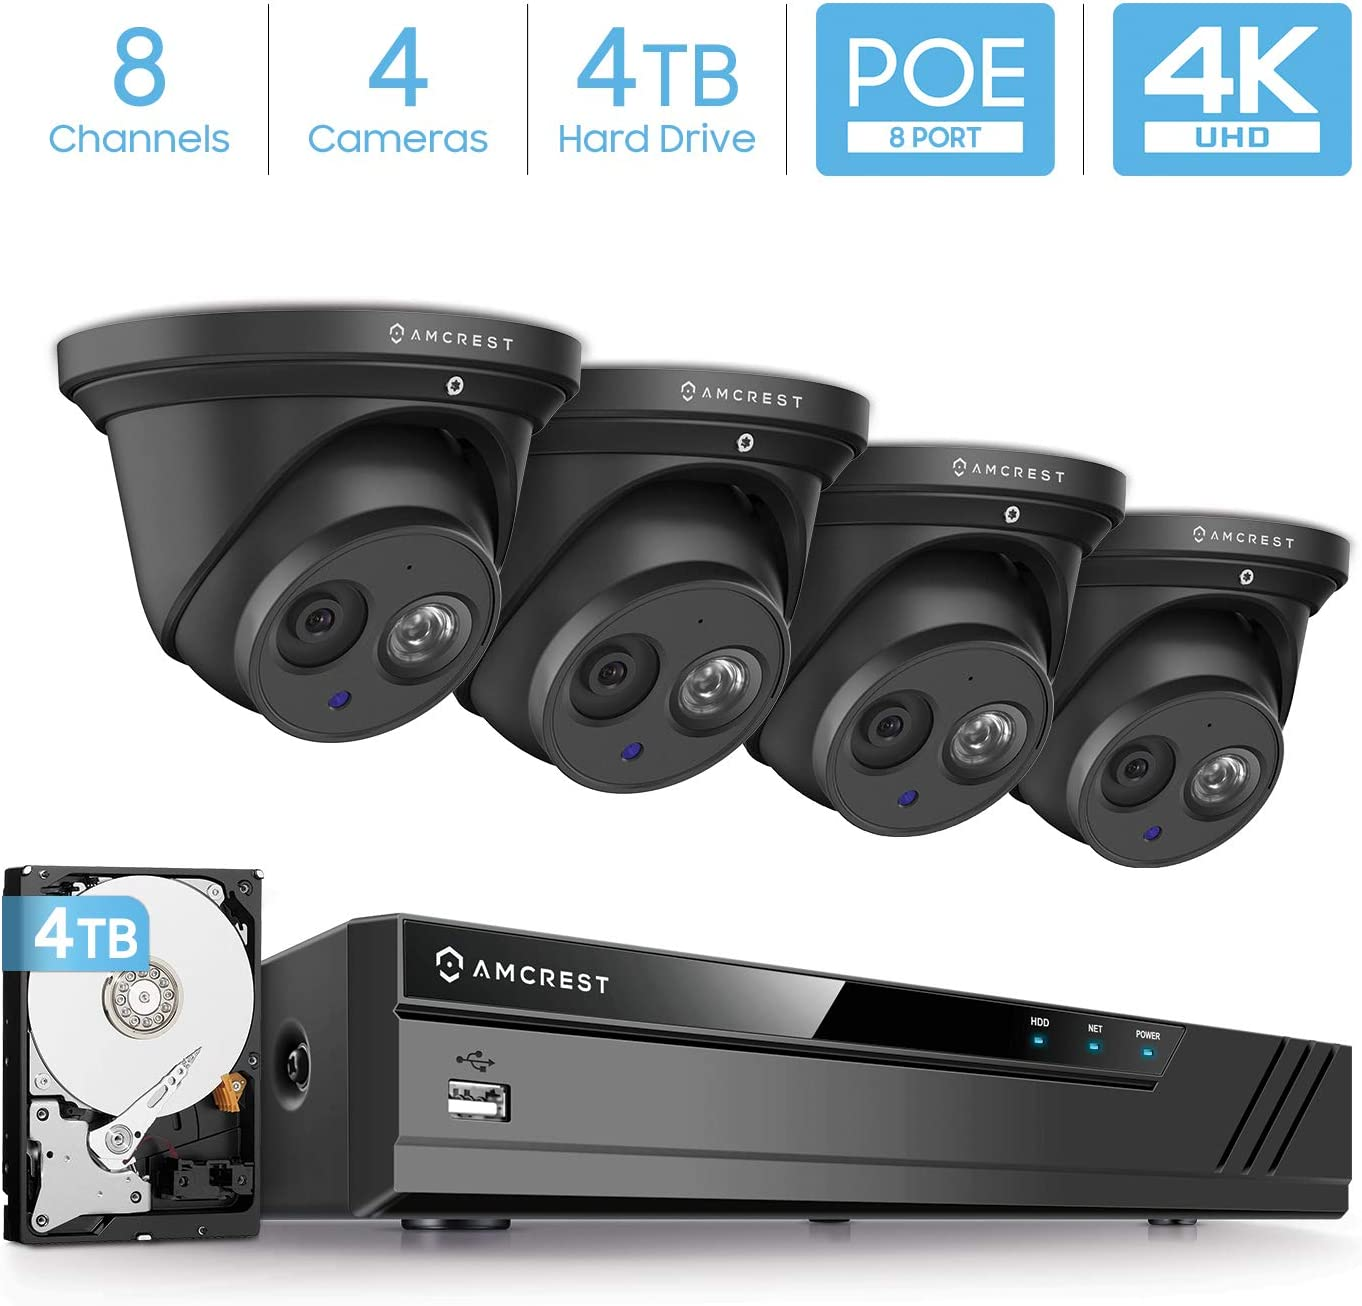 Amcrest 4K Security Camera System w 4K 8CH PoE NVR, 4 x 4K 8-Megapixel IP67 Weatherproof Metal Turret Dome POE IP Cameras 3840×2160 , Pre-Installed 4TB HDD, NV4108E-IP8M-T2499EB4-4TB Black